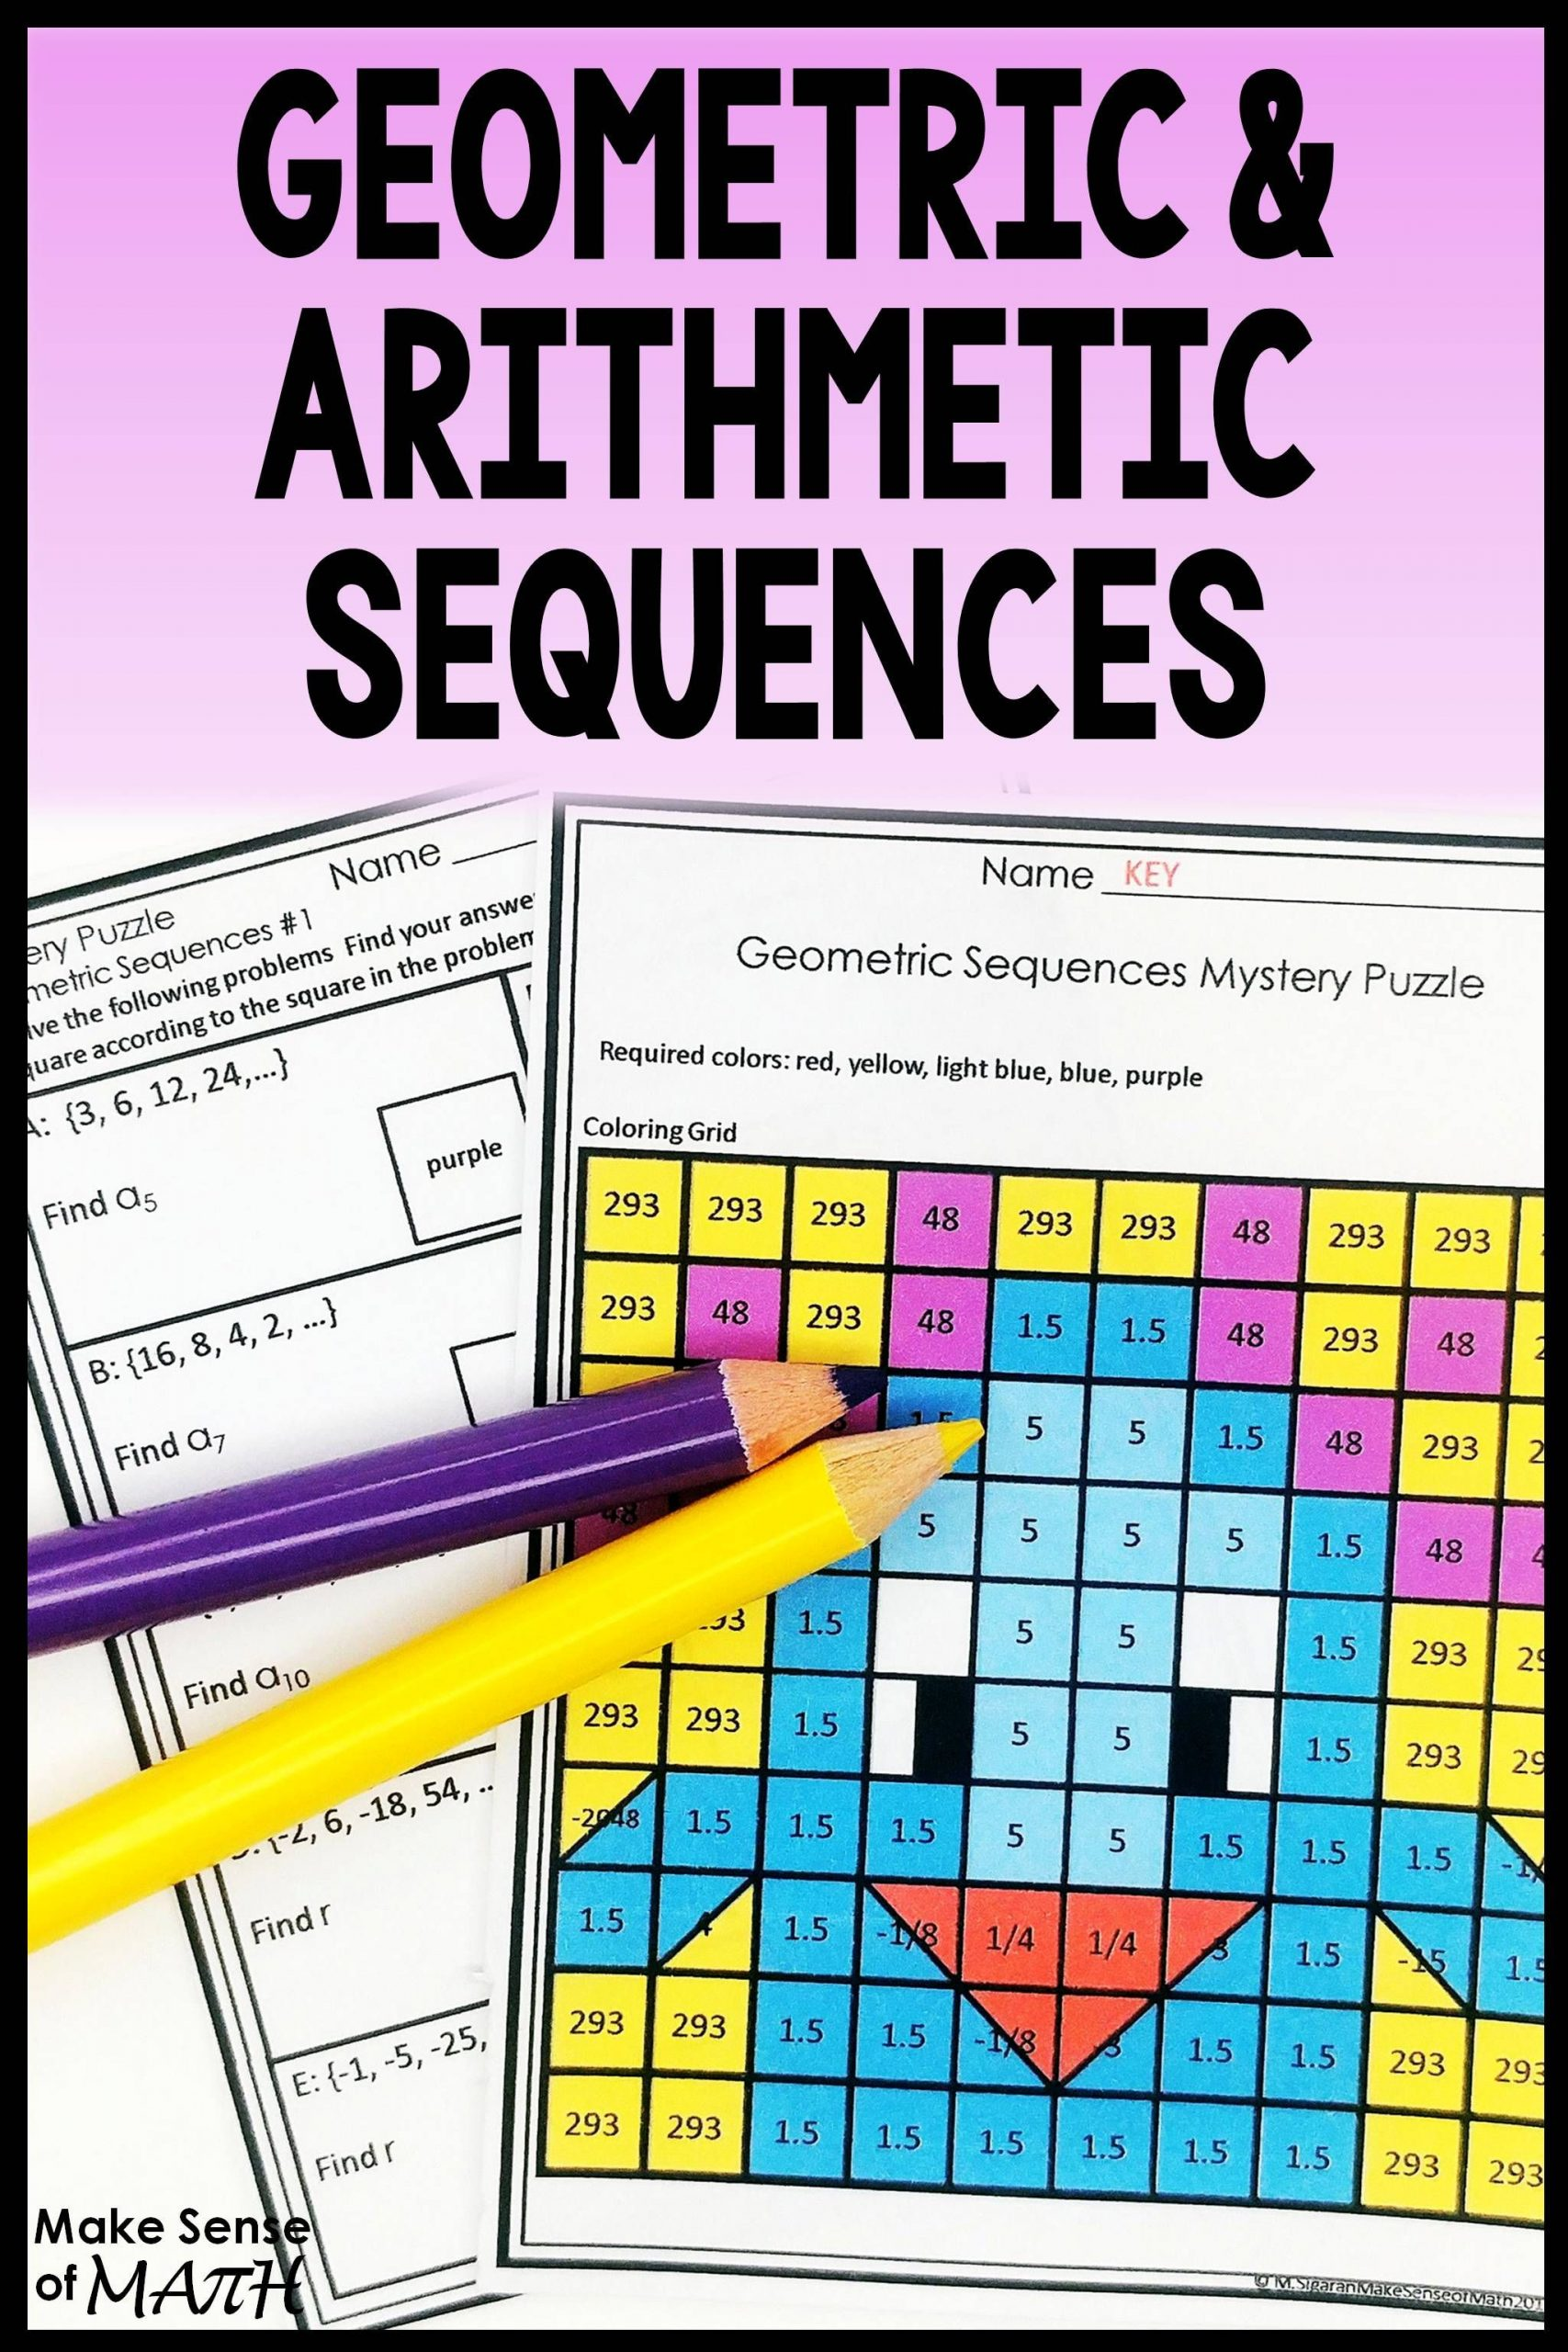 Sequencing Worksheets Middle School Geometric Sequences Activity and Arithmetic Sequences